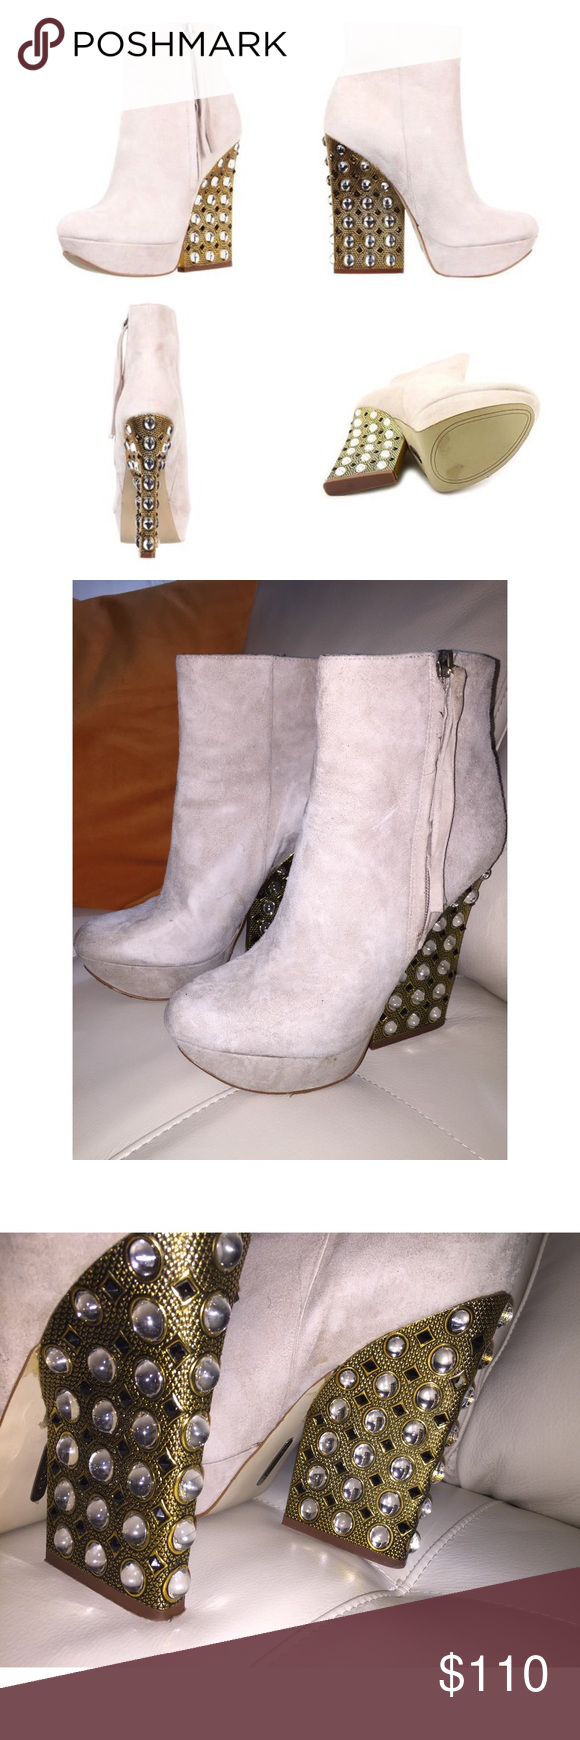 Studded Booties Beige suede booties with gold and silver hardware. ✨Show stopper booties✨ Boutique 9 Shoes